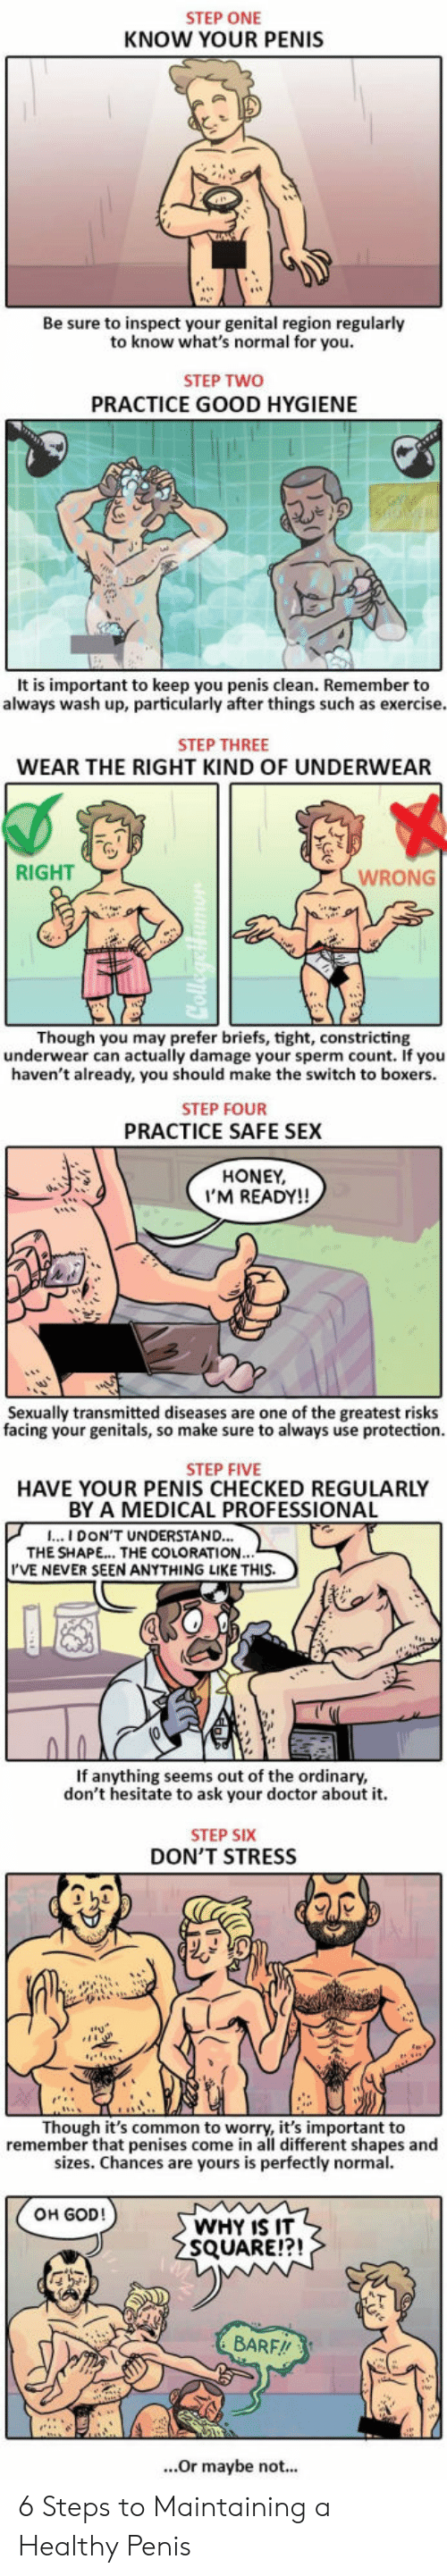 Doctor, God, and Sex: STEP ONE  KNOW YOUR PENIS  Be sure to inspect your genital region regularlyy  to know what's normal for you  STEP TWO  PRACTICE GOOD HYGIENE  It is important to keep you penis clean. Remember to  always wash up, particularly after things such as exercise  STEP THREE  WEAR THE RIGHT KIND OF UNDERWEAR  RIGHT  WRONG  Though you may prefer briefs, tight, constricting  underwear can actually damage your sperm count. If you  haven't already, you should make the switch to boxers.  STEP FOUR  PRACTICE SAFE SEX  HONEY  I'M READY!!  Sexually transmitted diseases are one of the greatest risks  facing your genitals, so make sure to always use protection.  genitals, S0  STEP FIVE  HAVE YOUR PENIS CHECKED REGULARLY  BY A MEDICAL PROFESSIONAL  CAL PROFED  I...I DON'T UNDERSTAND..  THE SHAPE.. THE COLORATION  I'VE NEVER SEEN ANYTHING LIKE THIS.  If anything seems out of the ordinary  don't hesitate to ask your doctor about it.  STEP SIX  DON'T STRESS  23  Though it's common to worry, it's important to  remember that penises come in all different shapes and  sizes. Chances are yours is perfectly normal  OH GOD!  WHY IS IT  SQUARE!?!  BARF!!  ...Or maybe not... 6 Steps to Maintaining a Healthy Penis